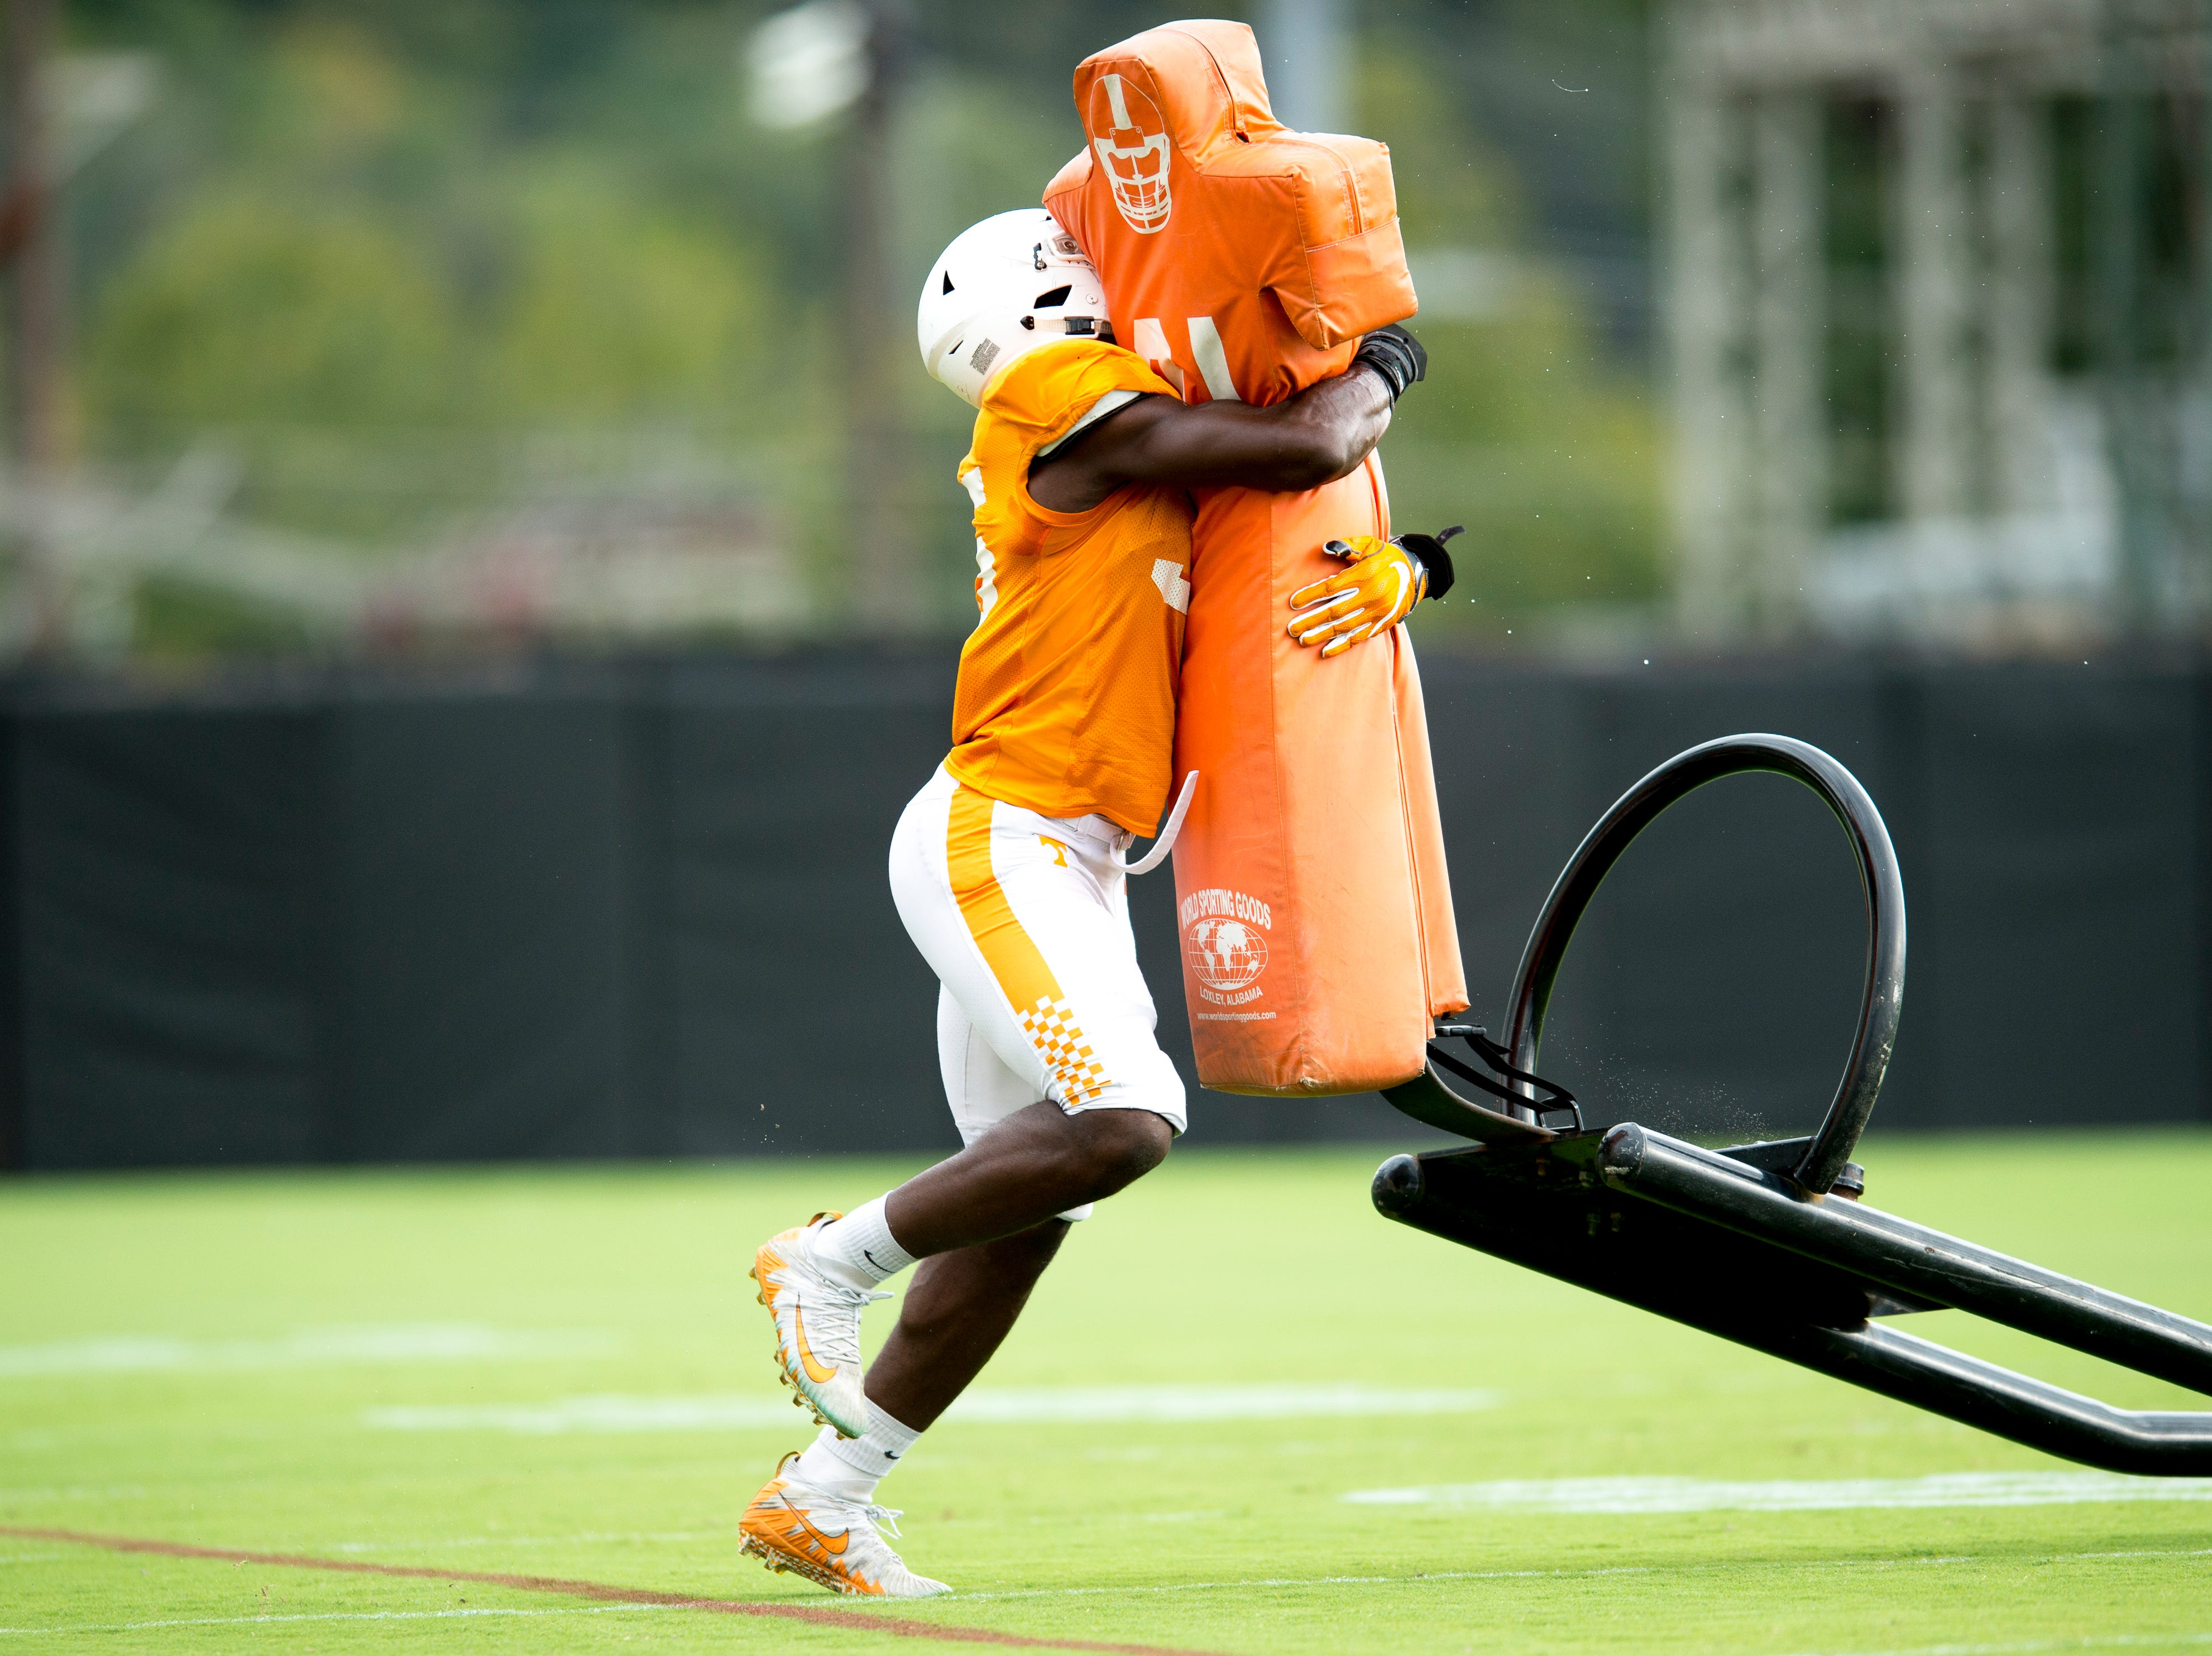 Tennessee linebacker Daniel Bituli (35) takes down a tackle sled during Tennessee fall football practice at Haslam Field in Knoxville, Tennessee on Tuesday, October 9, 2018.